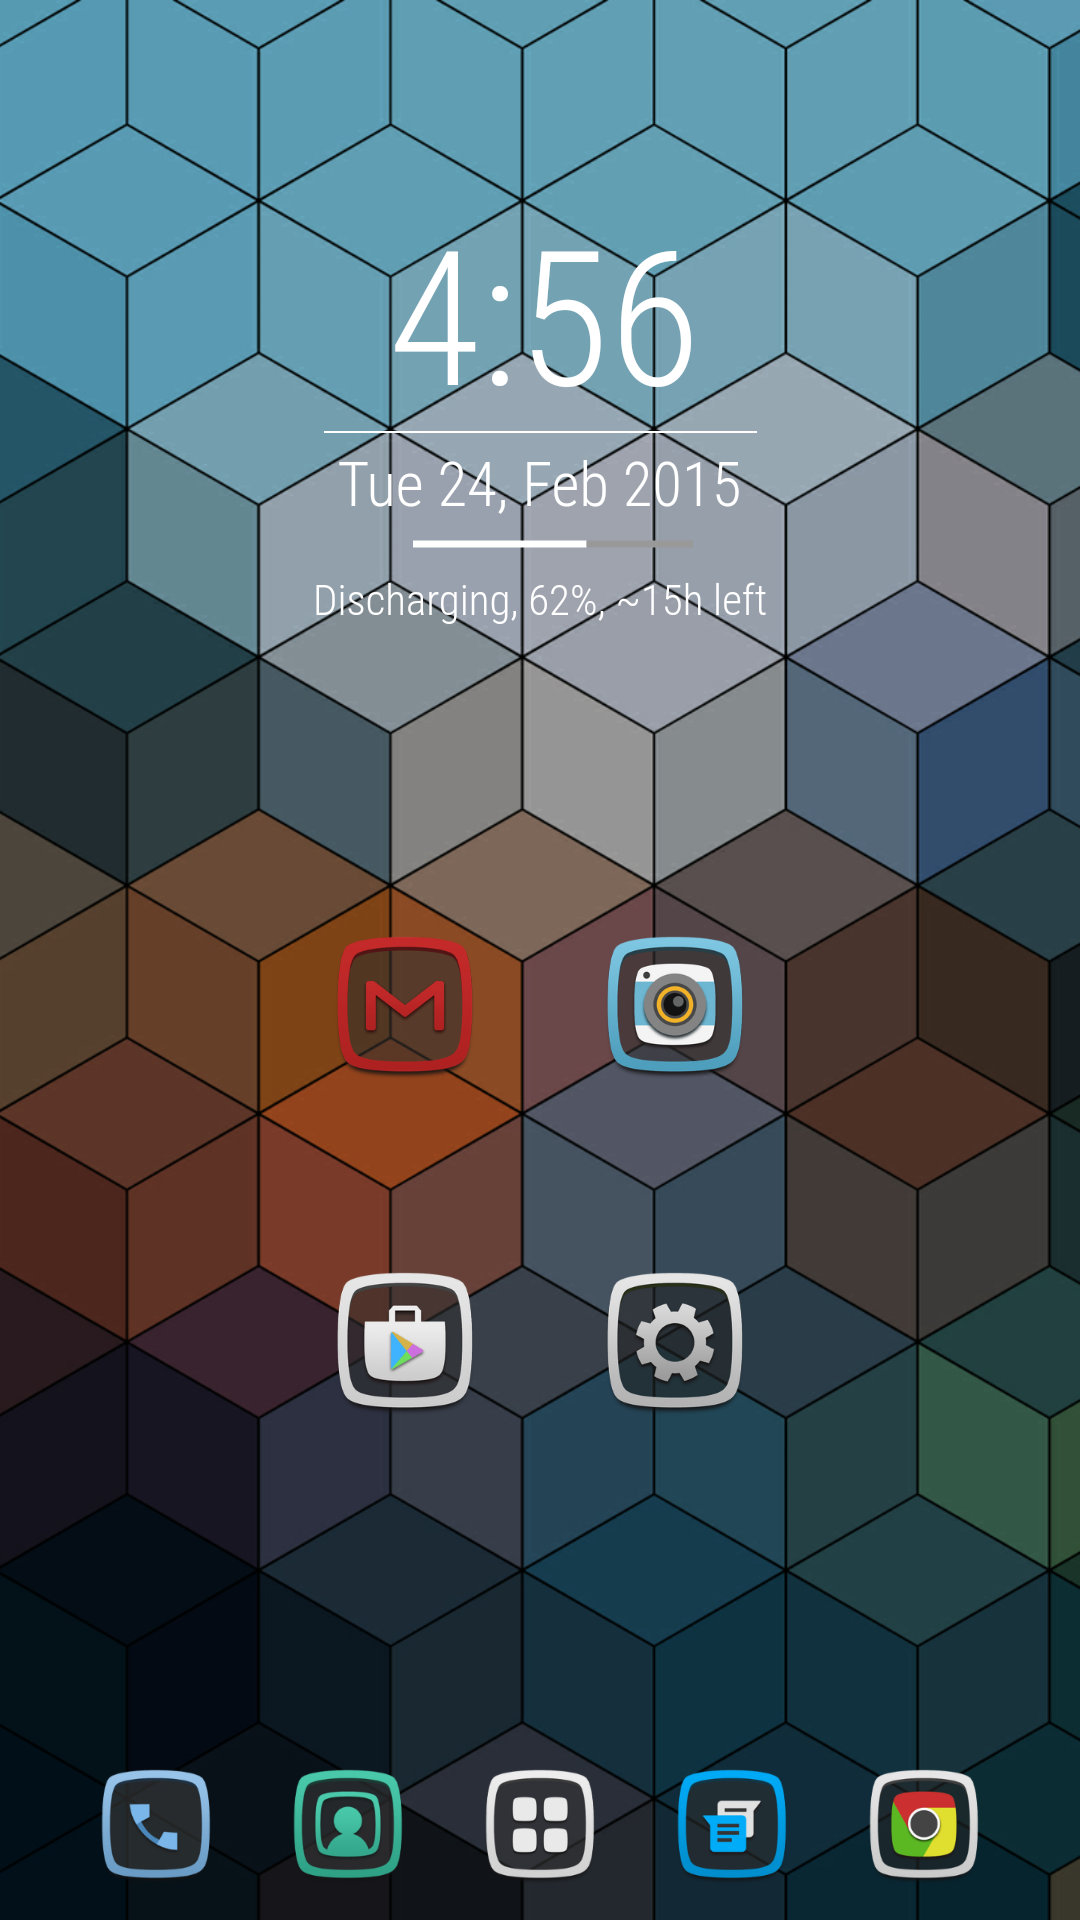 Screenshot_2015-02-24-16-56-09.png